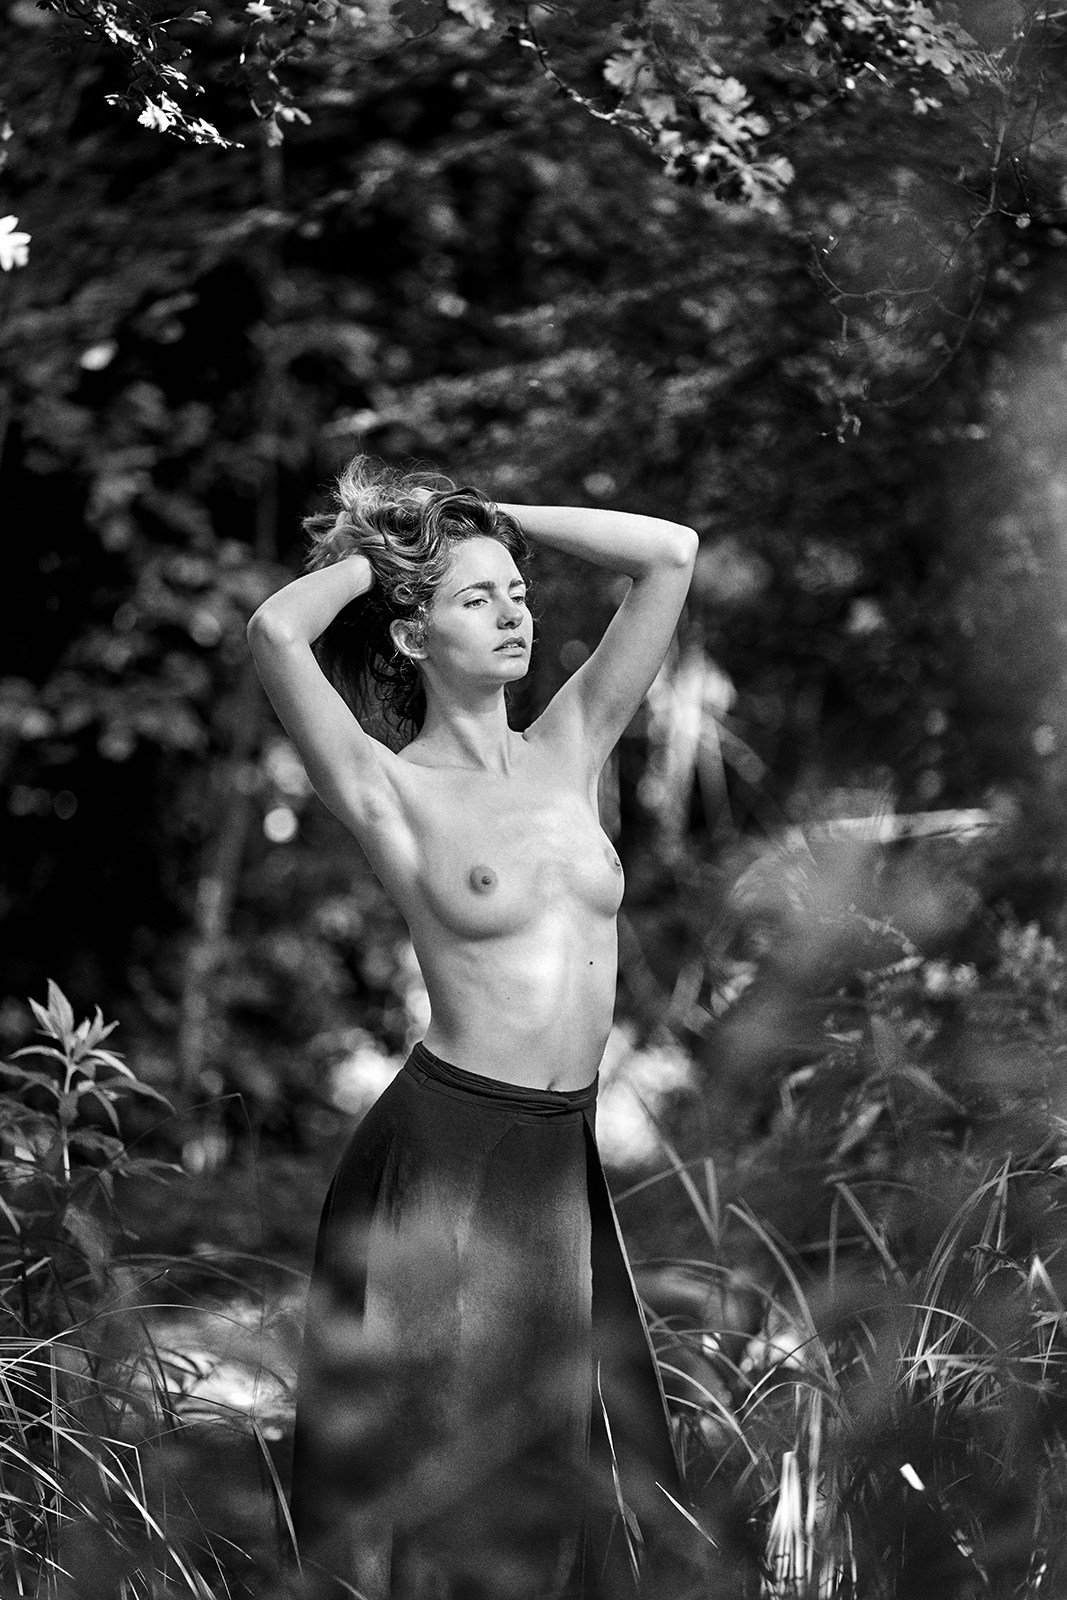 Evelyn Sommer - Marc Nolte photoshoot